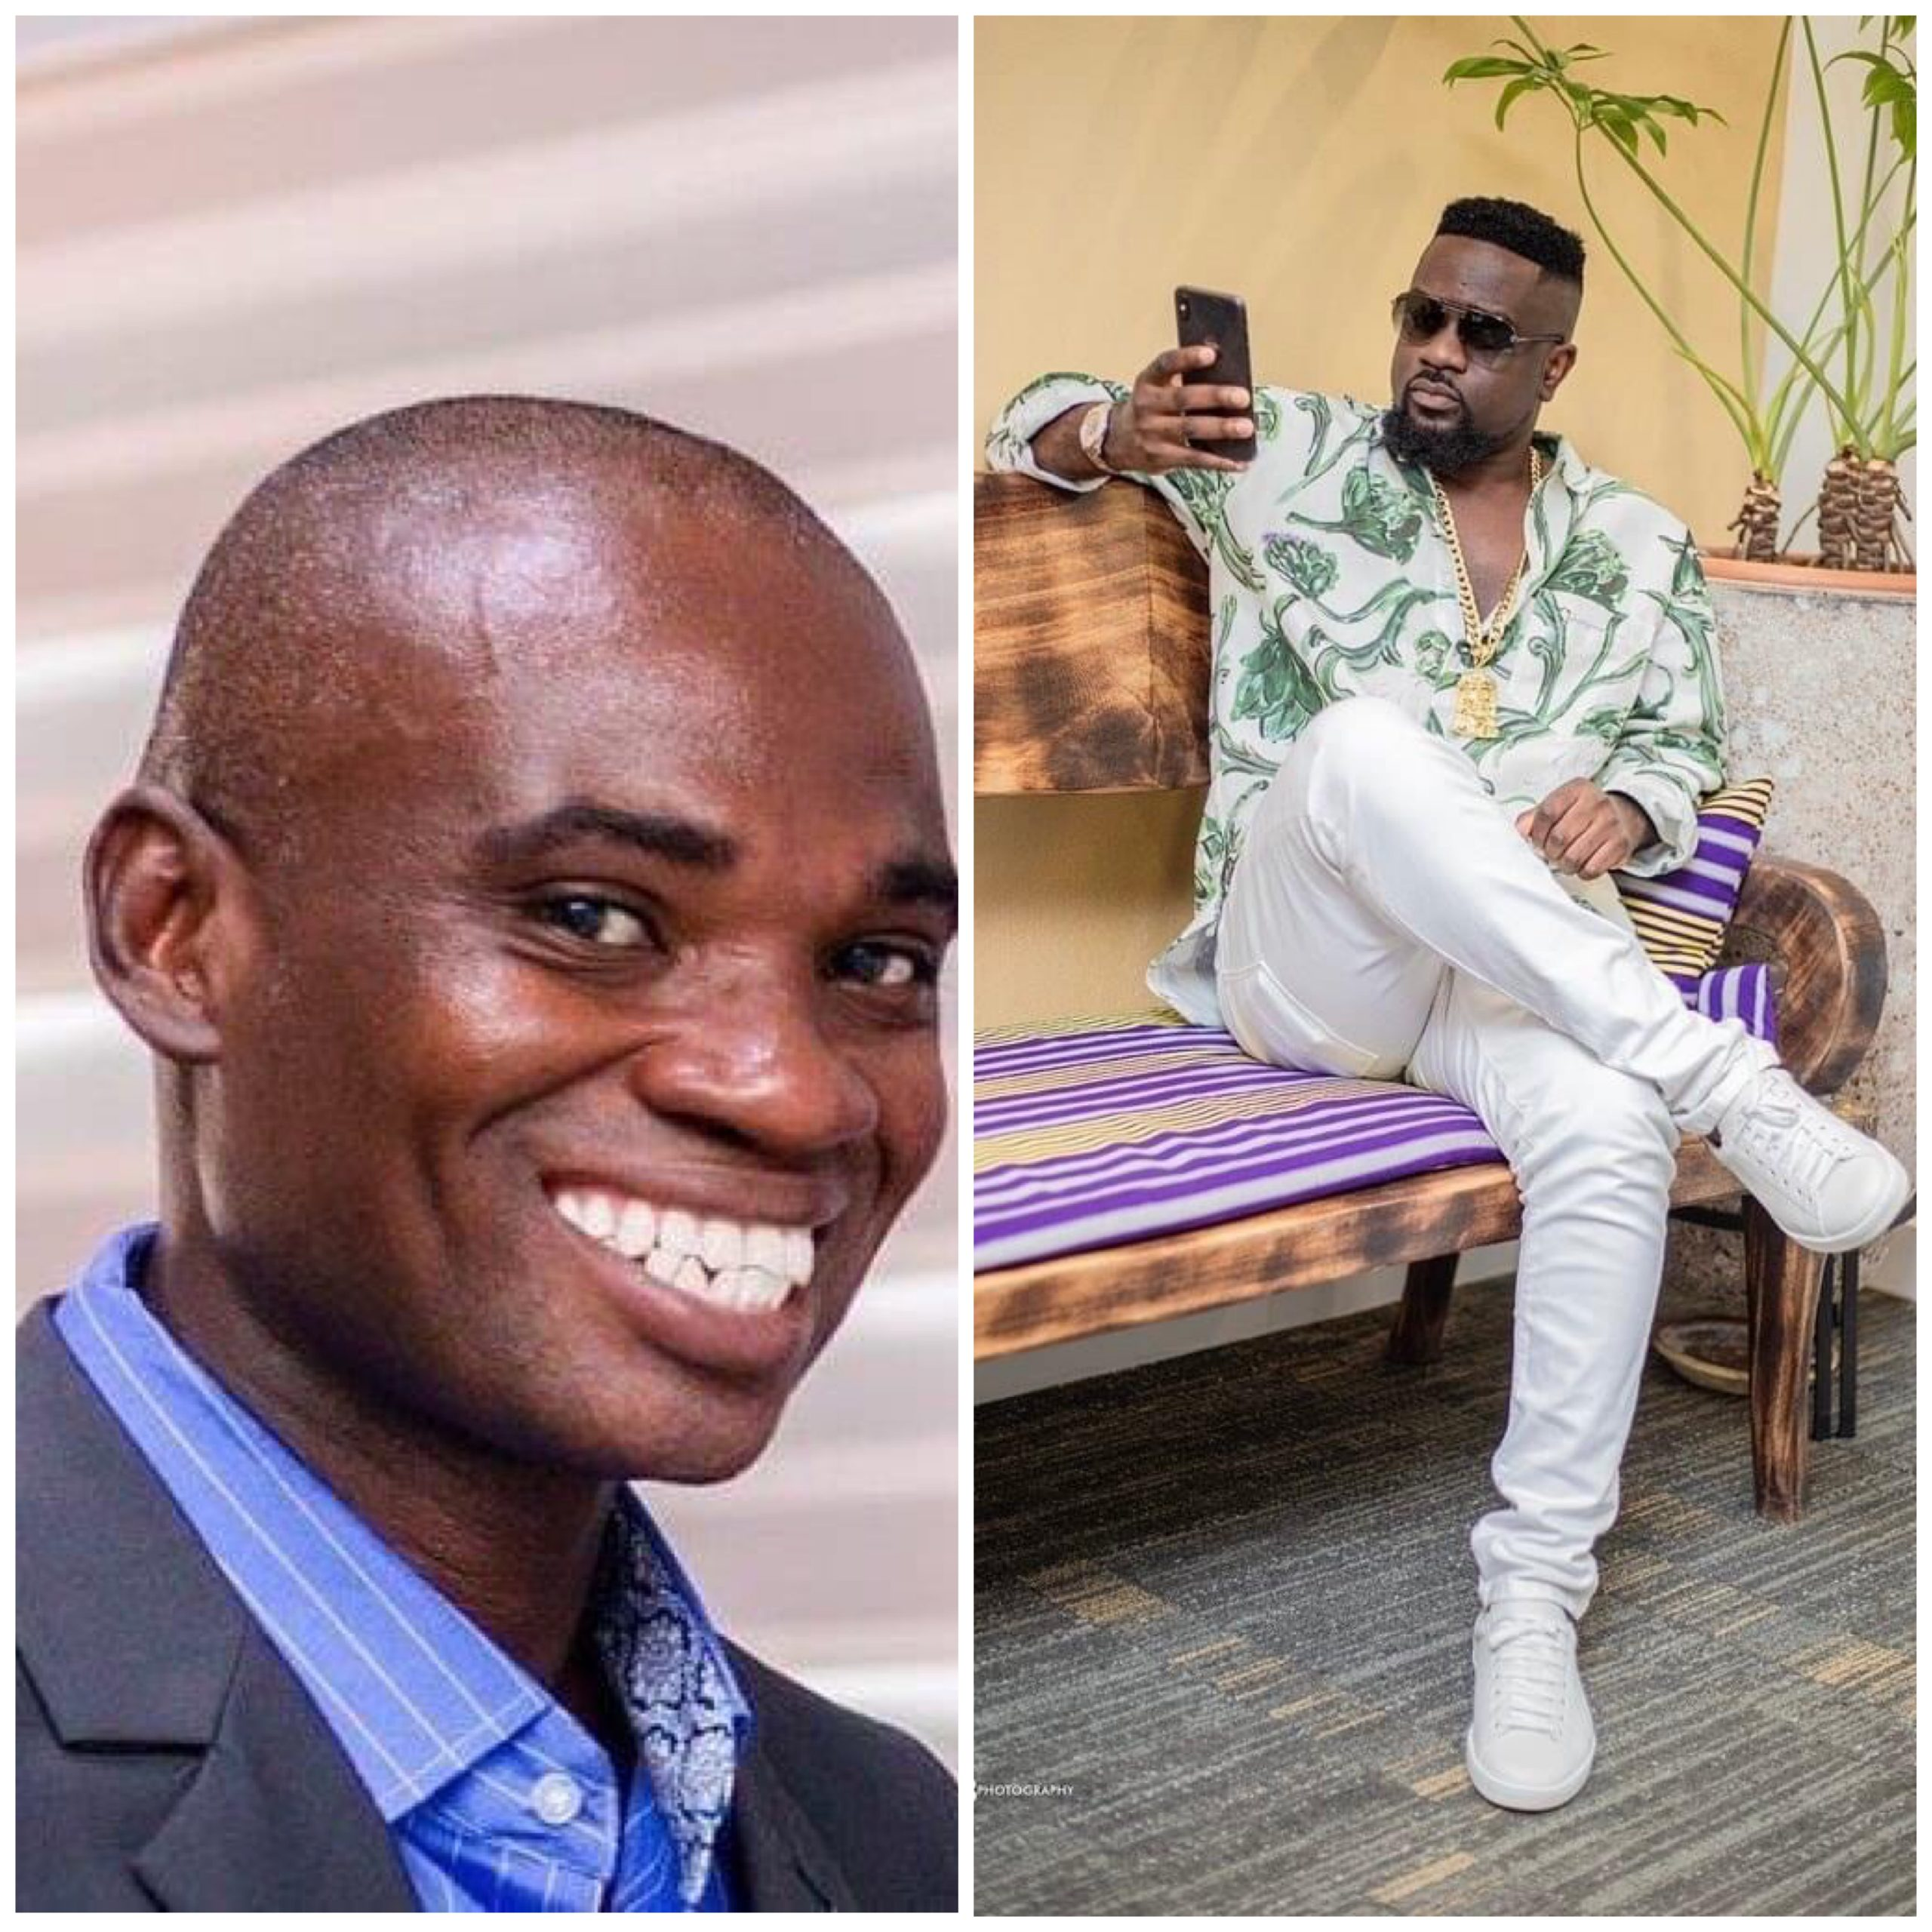 Because Of My Awards, Sarkodie Did Not Go To The VGMA - Dr Fordjour